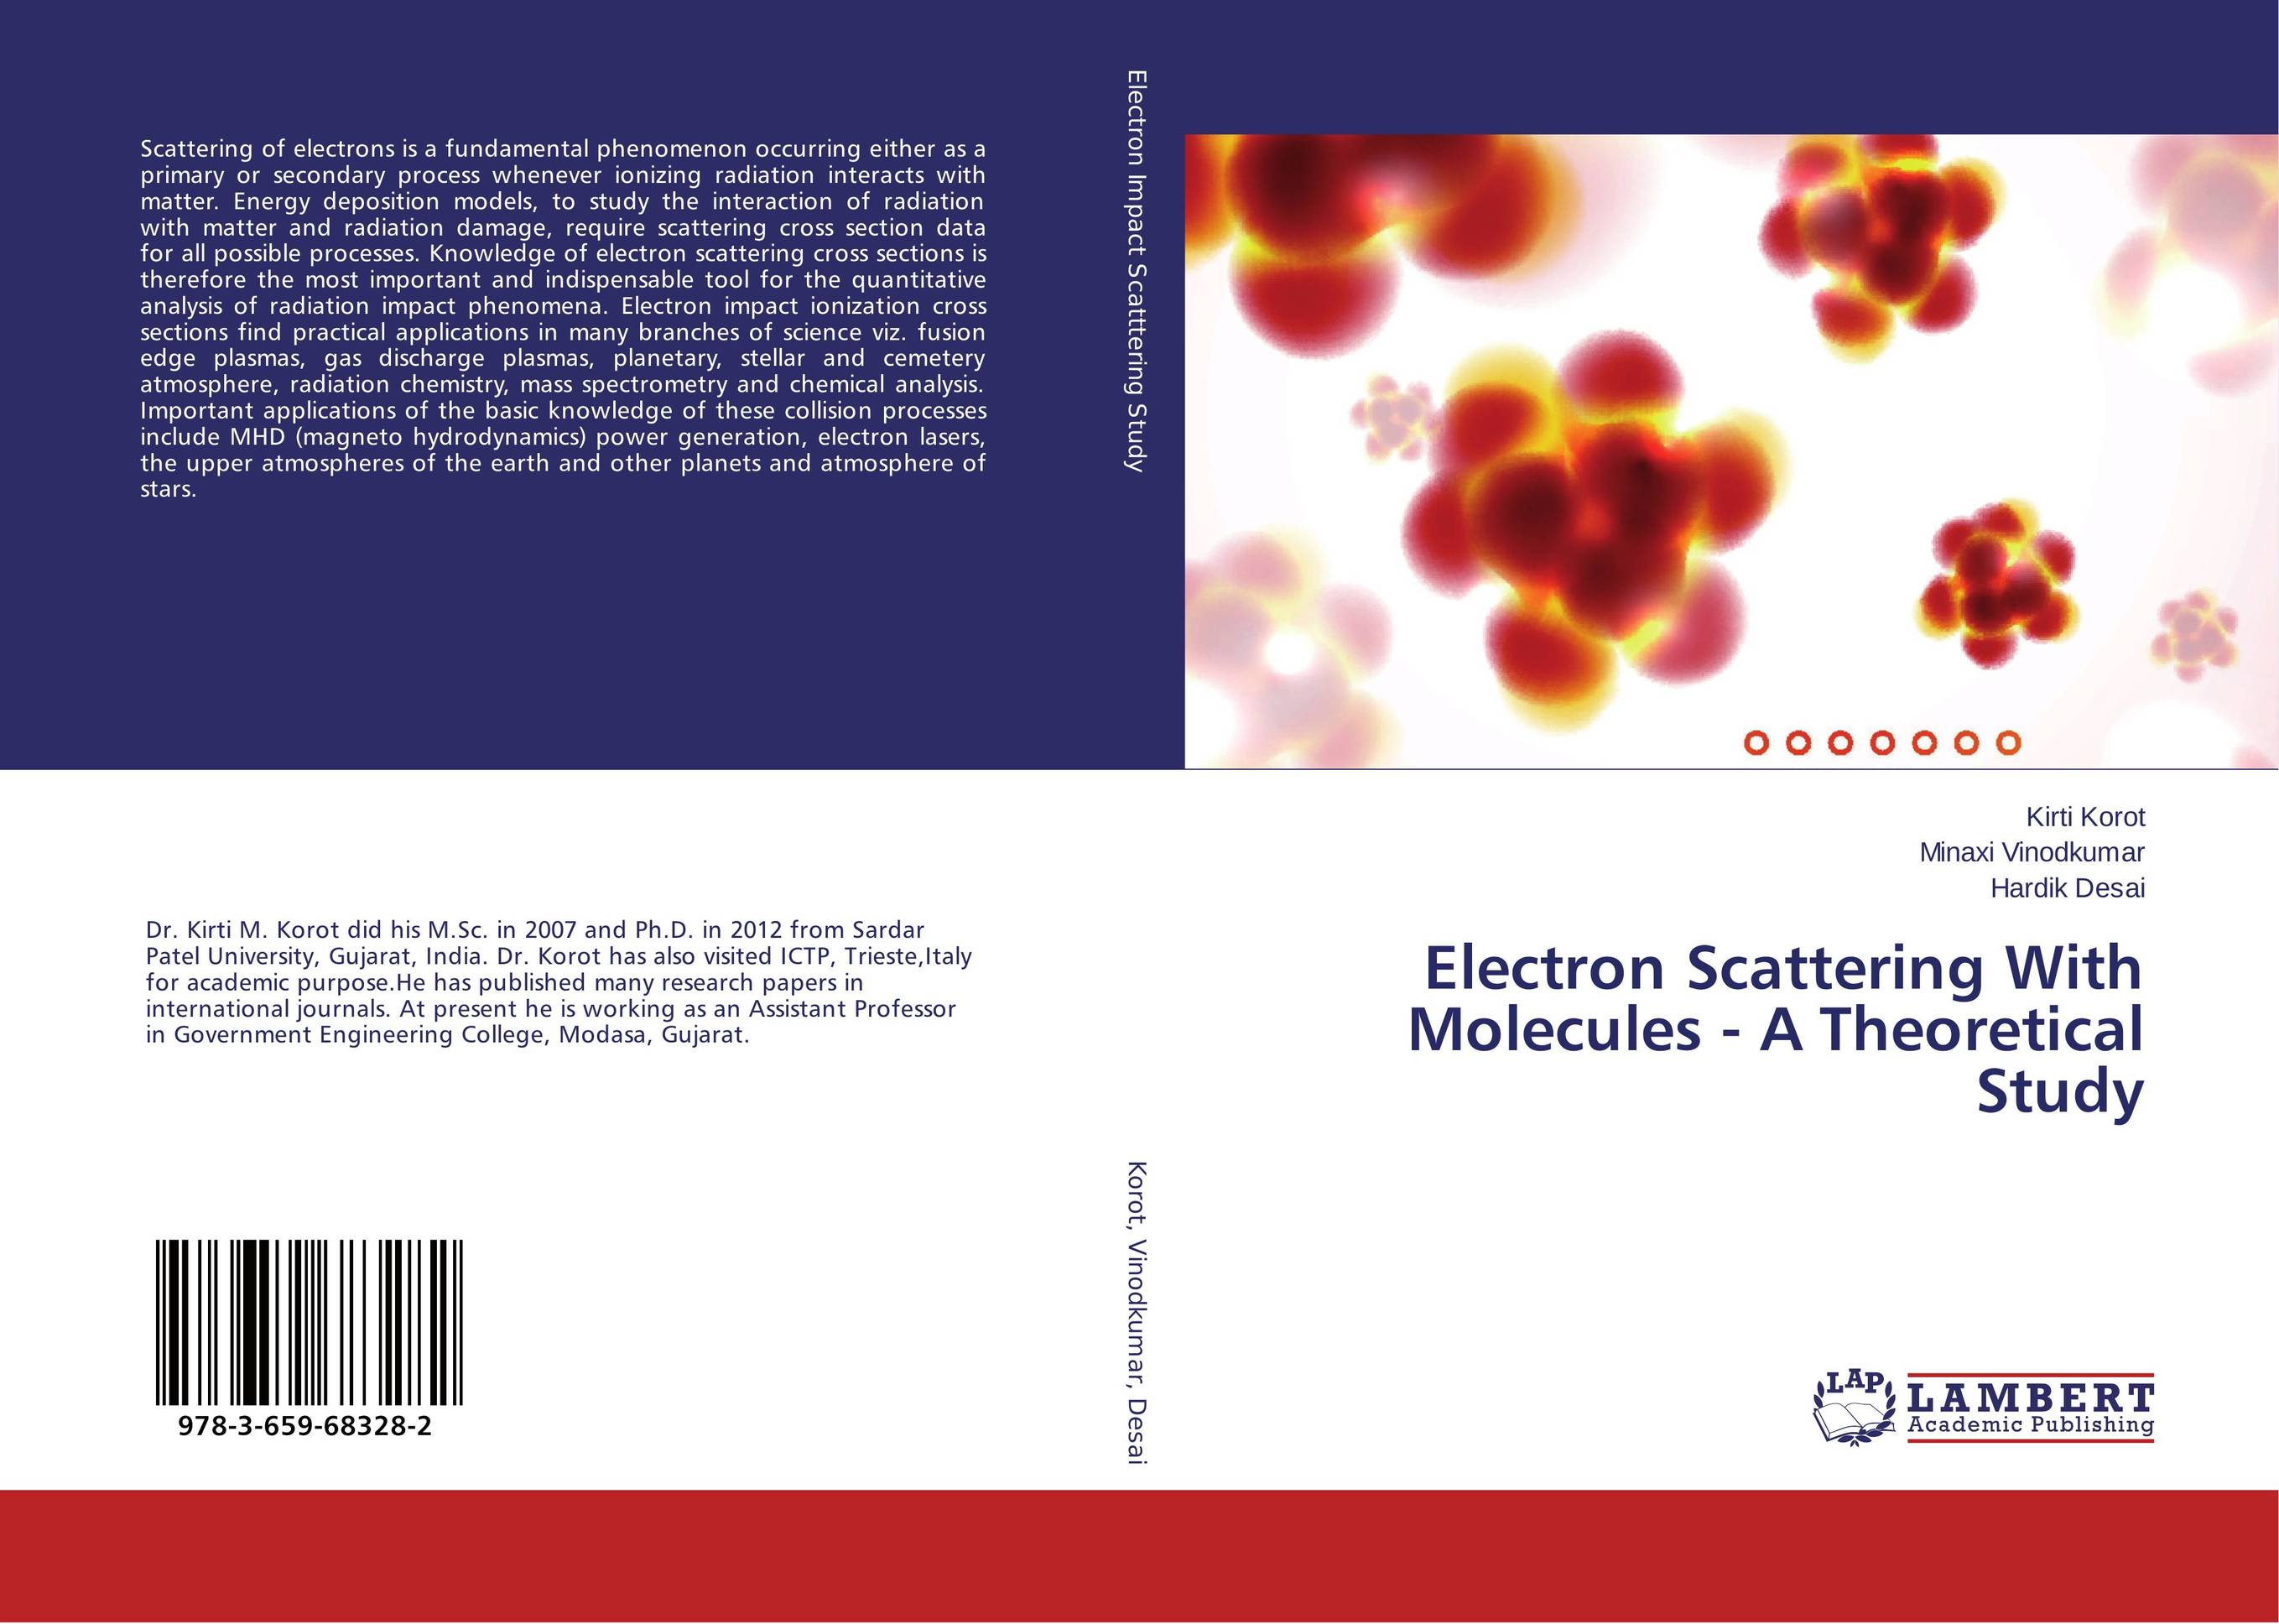 Electron Scattering With Molecules - A Theoretical Study